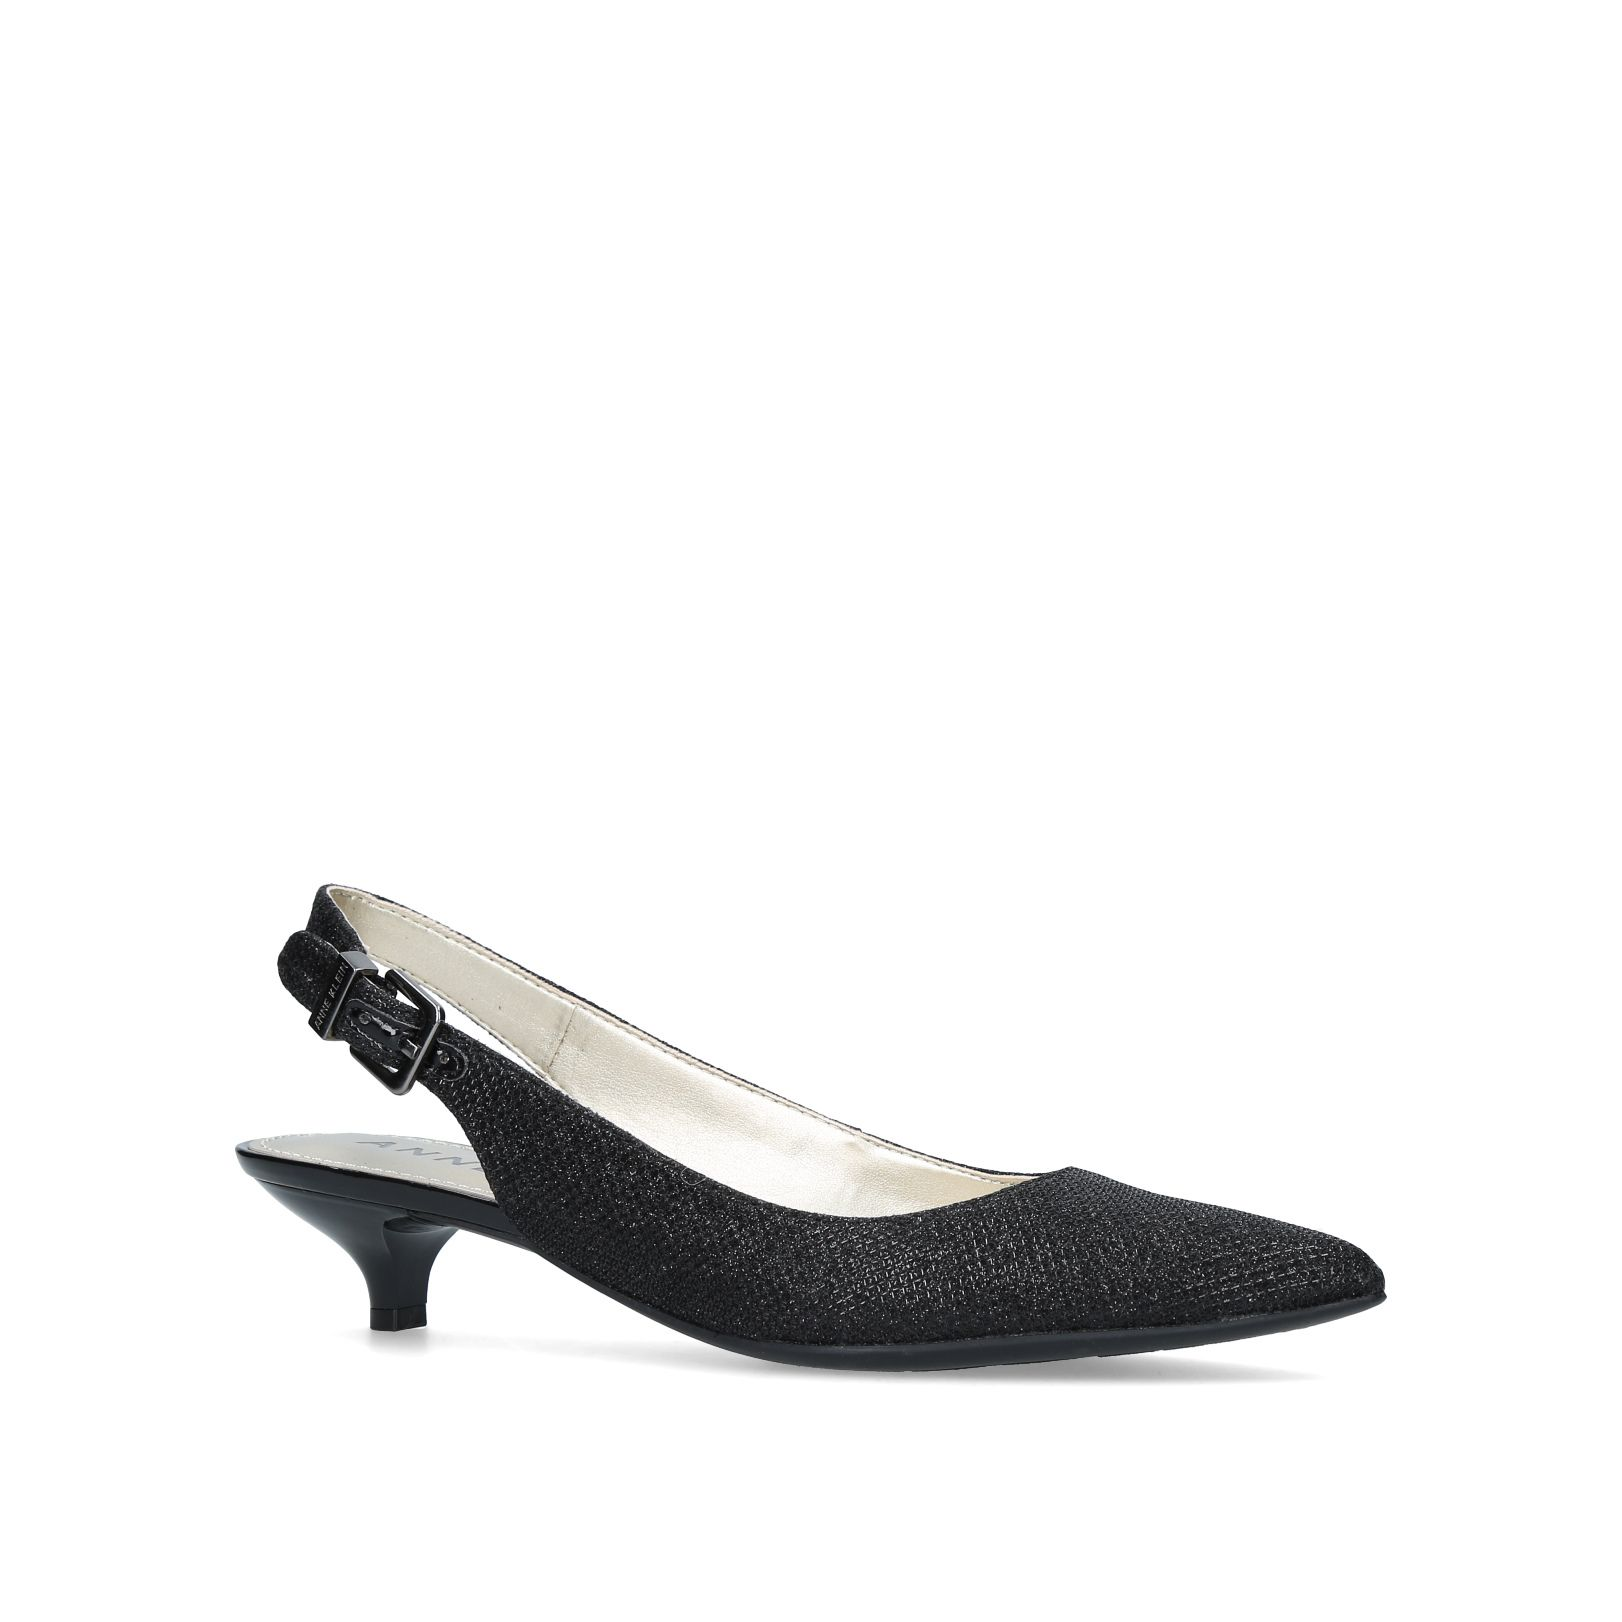 Anne Klein Expert Courts, Black